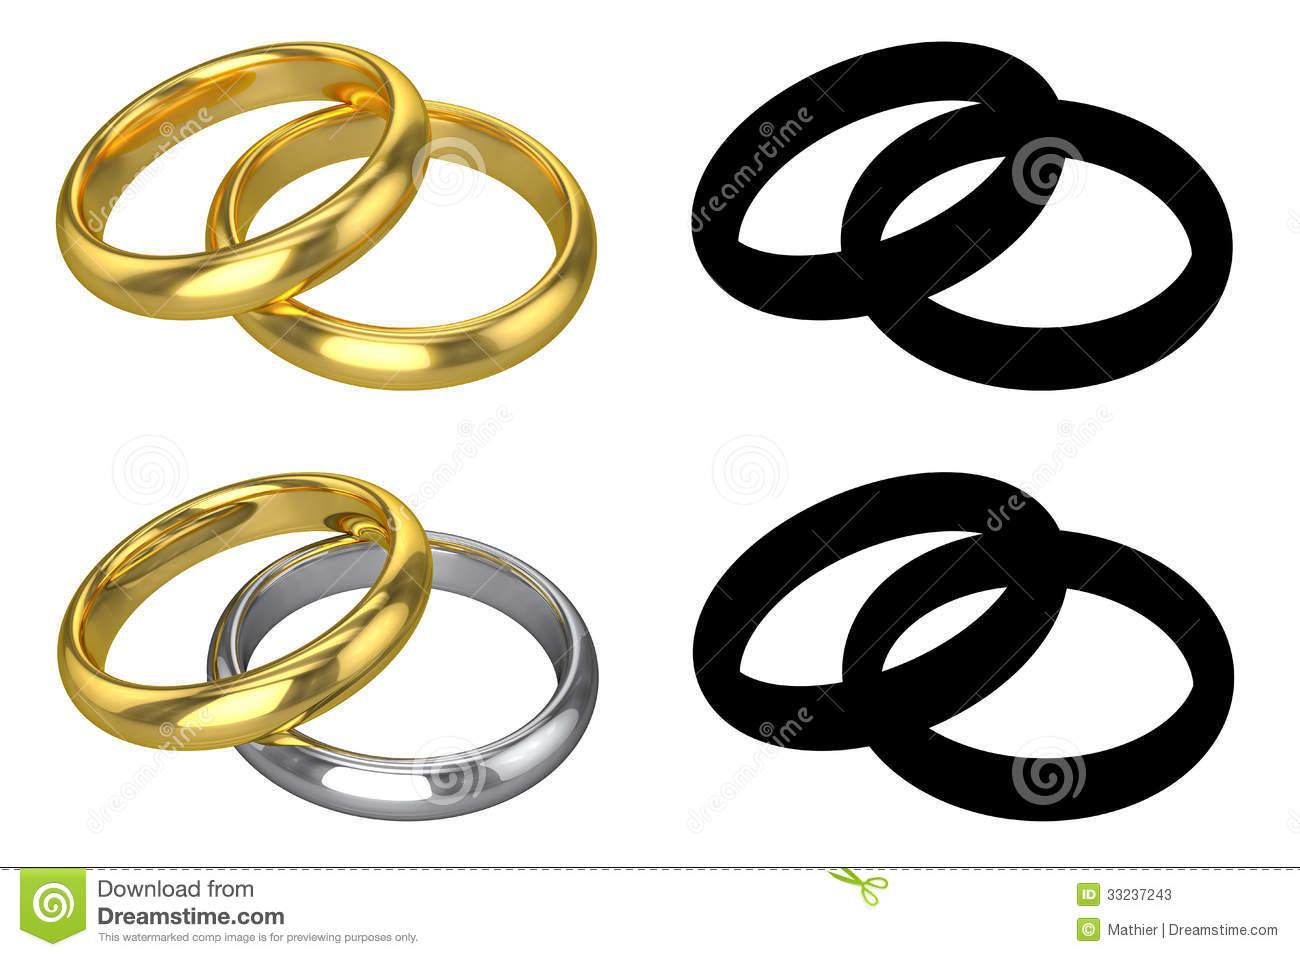 Double wedding ring clipart.